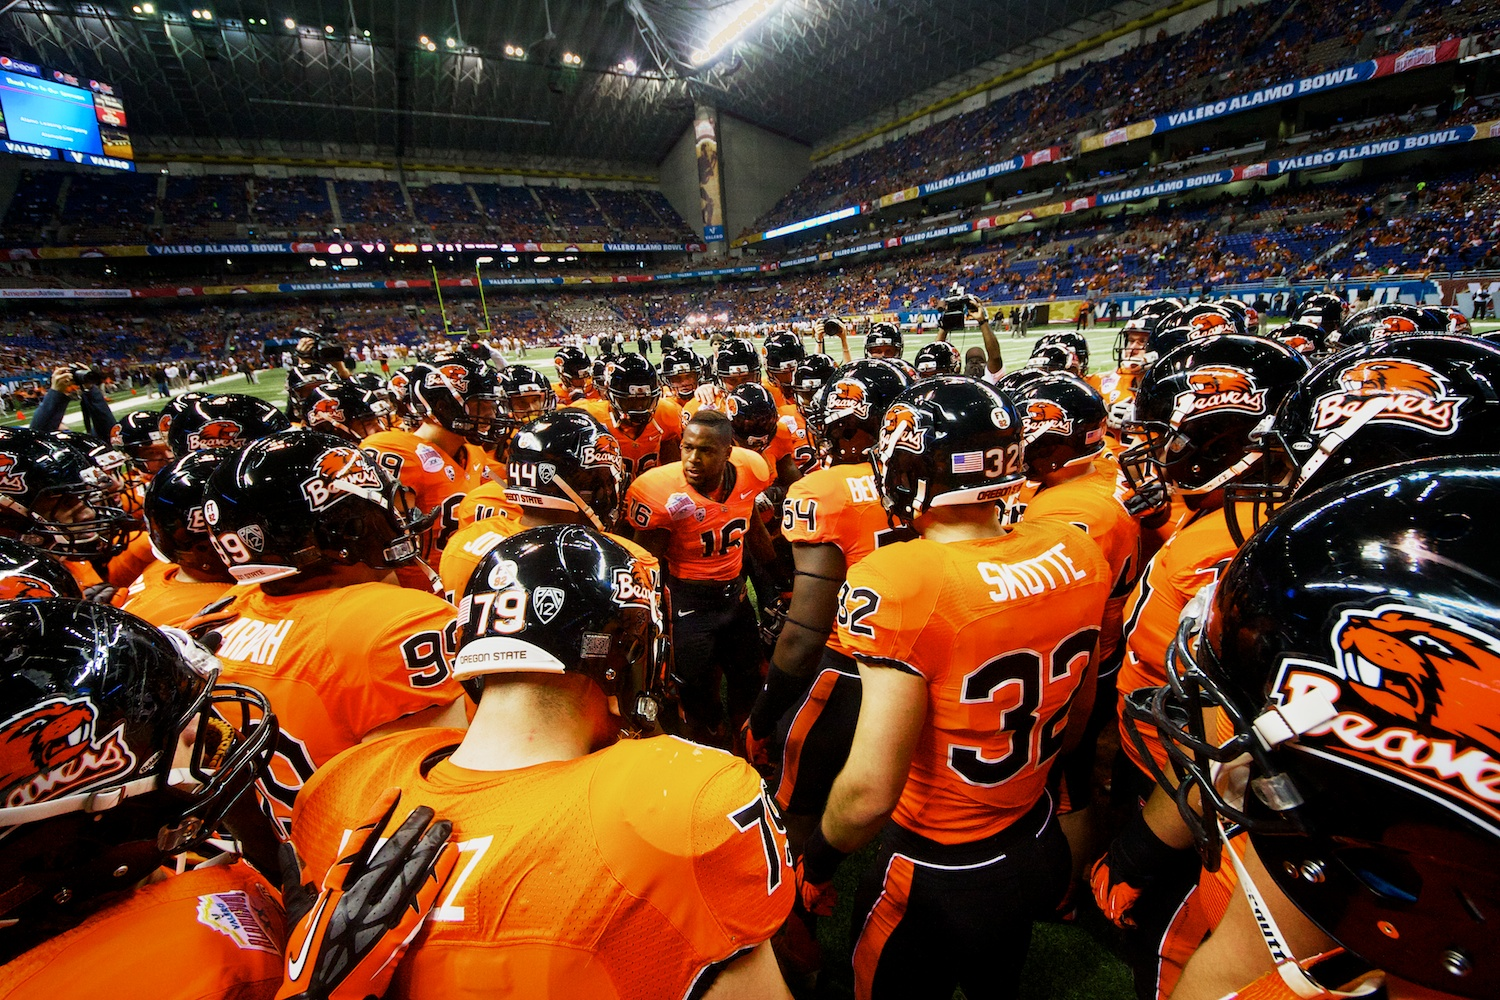 Oregon State players huddle together prior to the start of the Valero Alamo Bowl on December 29, 2012.